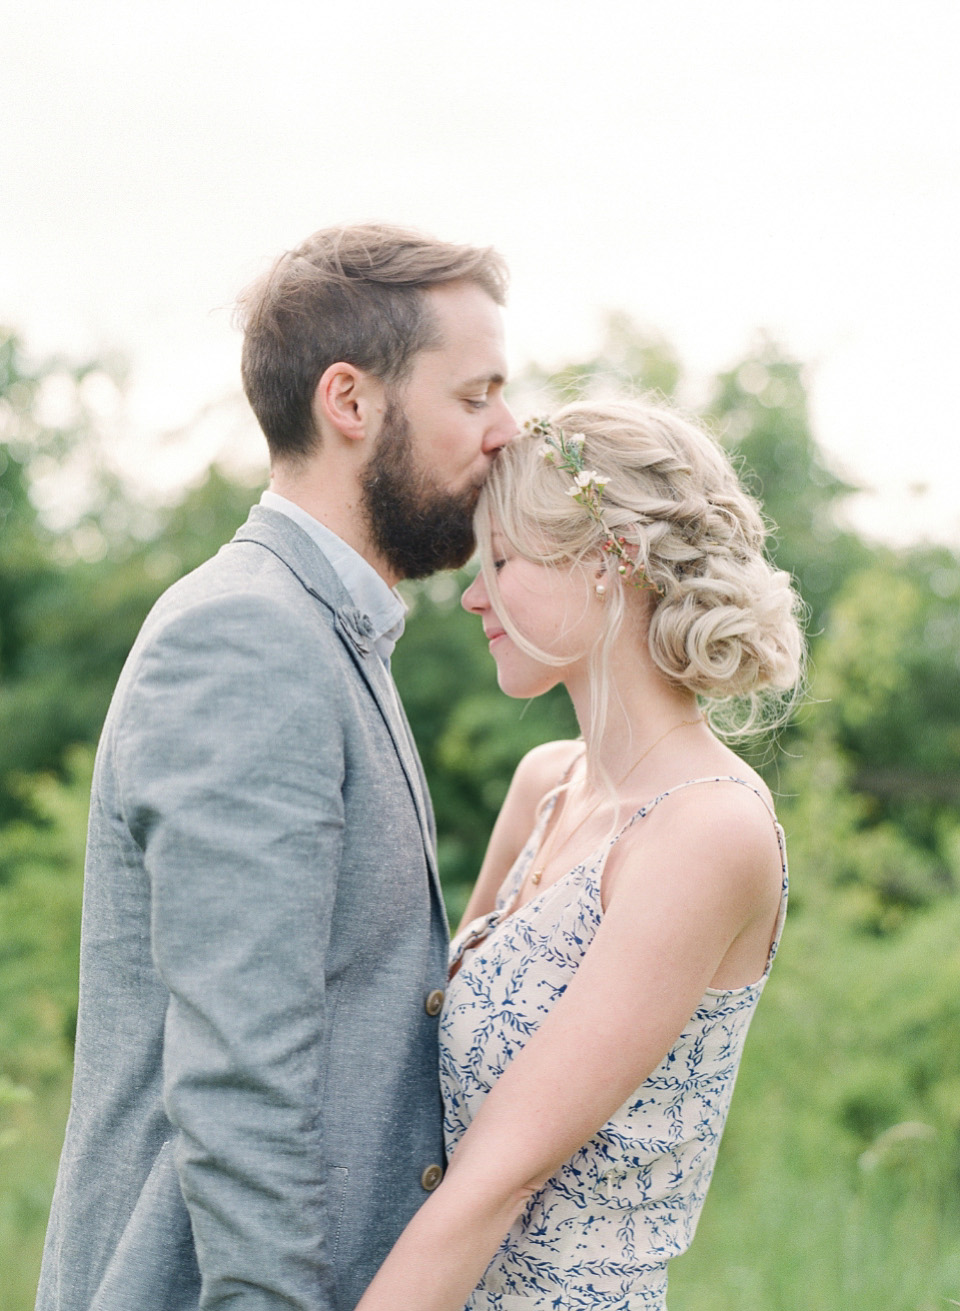 Engagement Shoots – Their Benefits And Why You Should Have One